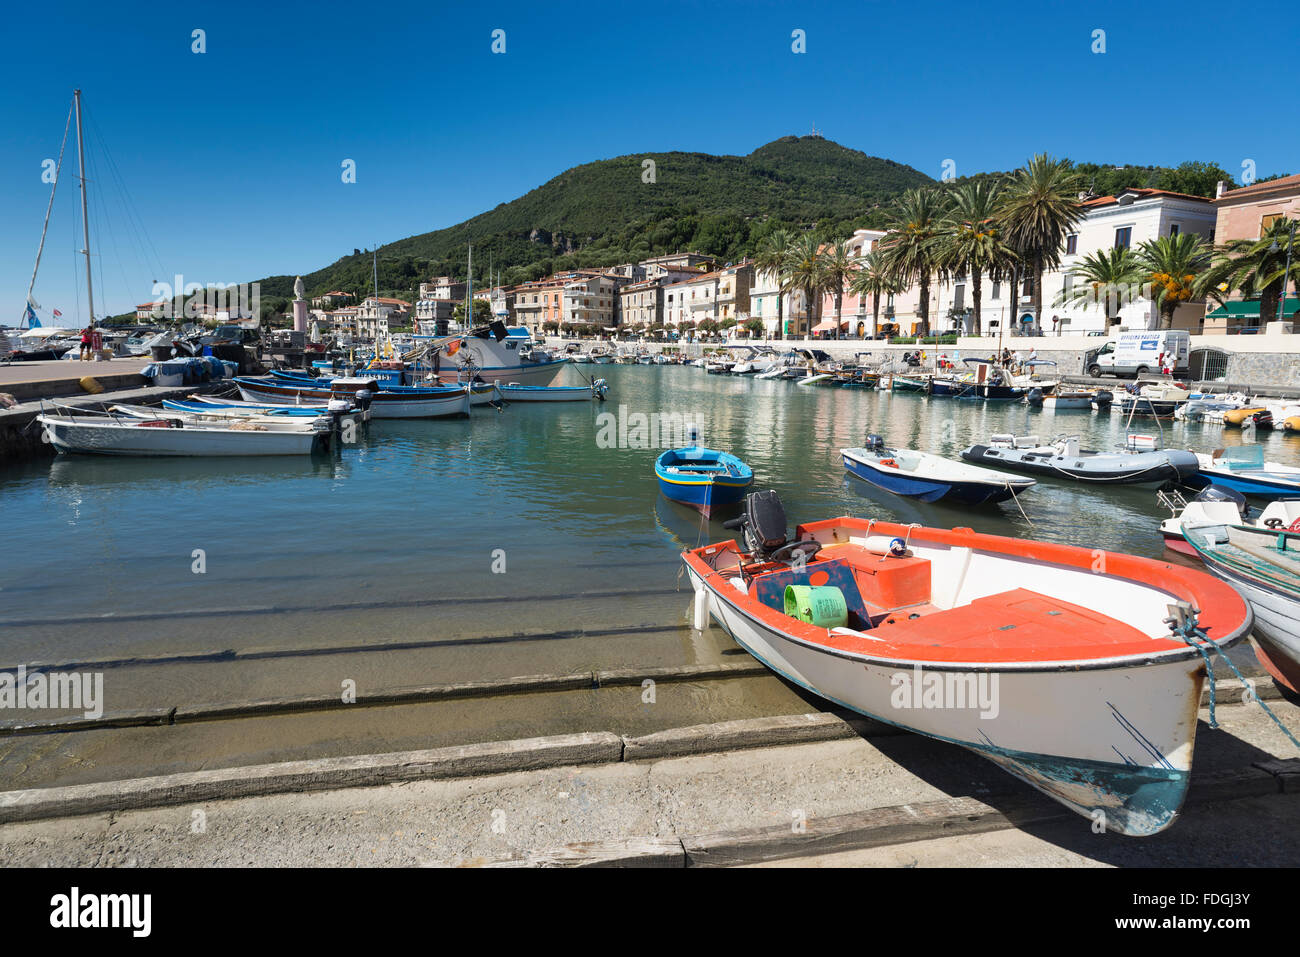 Fishing boats, motor boats and yachts in the picturesque harbor of Scario on the coast of the Mediterranean Sea - Stock Image